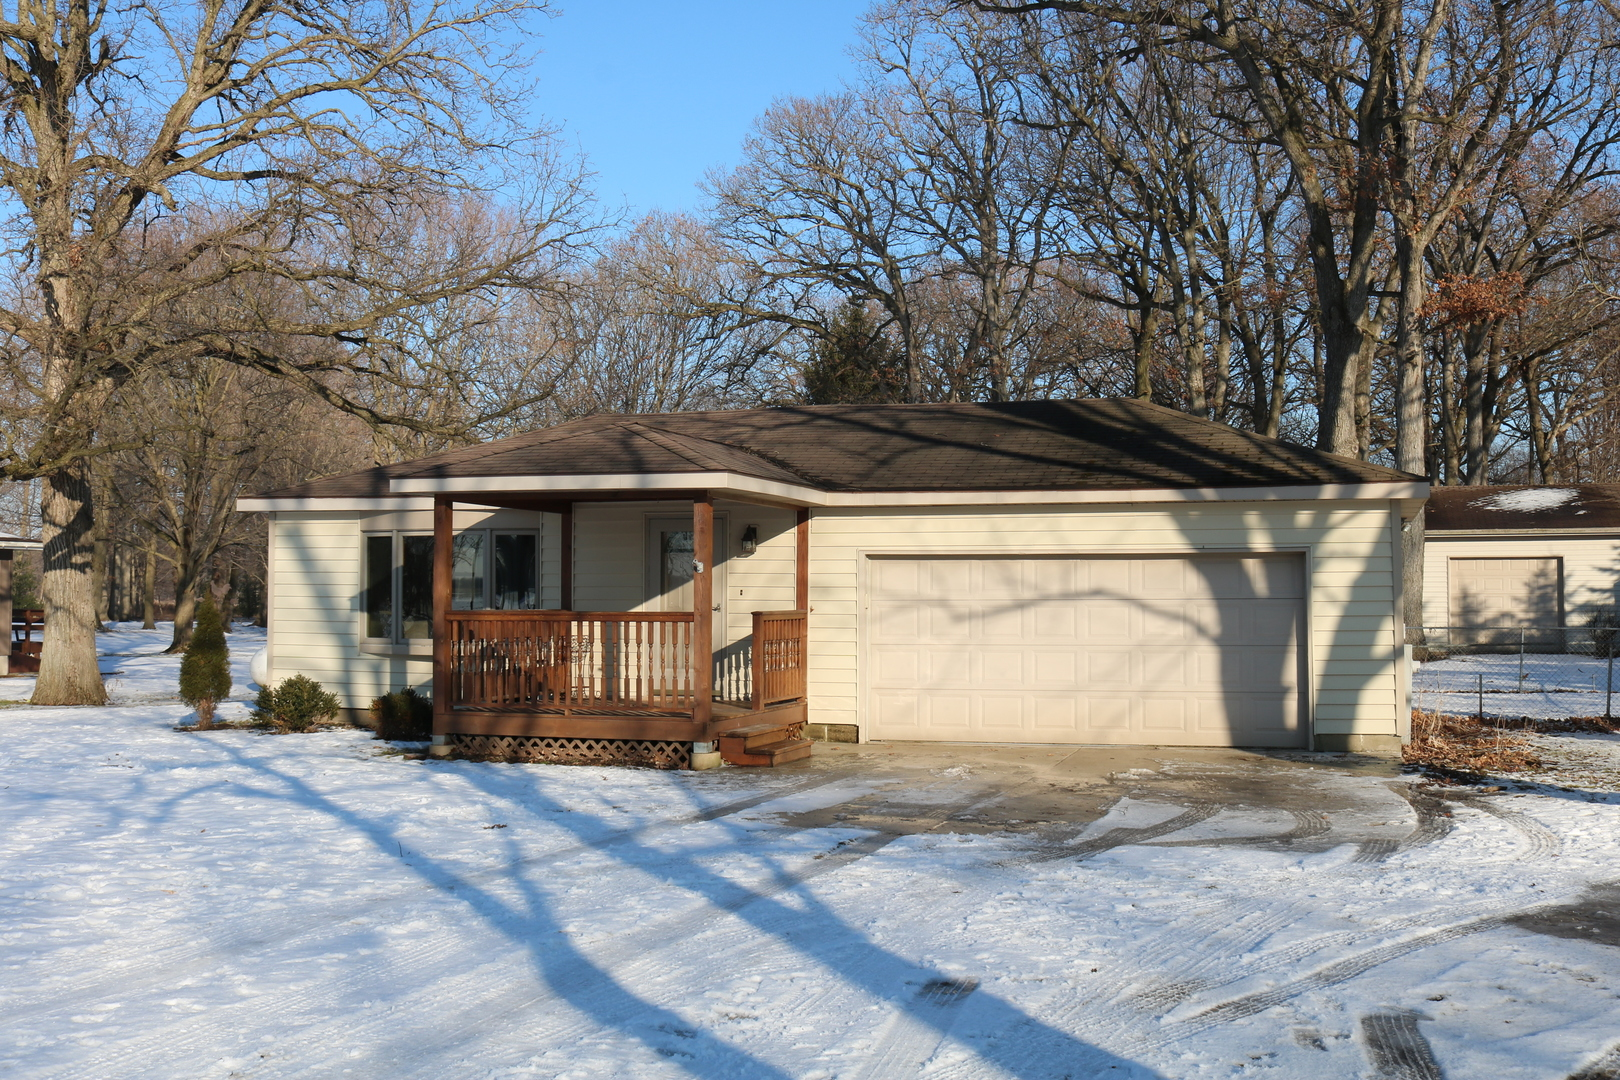 21108  Oak,  Maple Park, Illinois